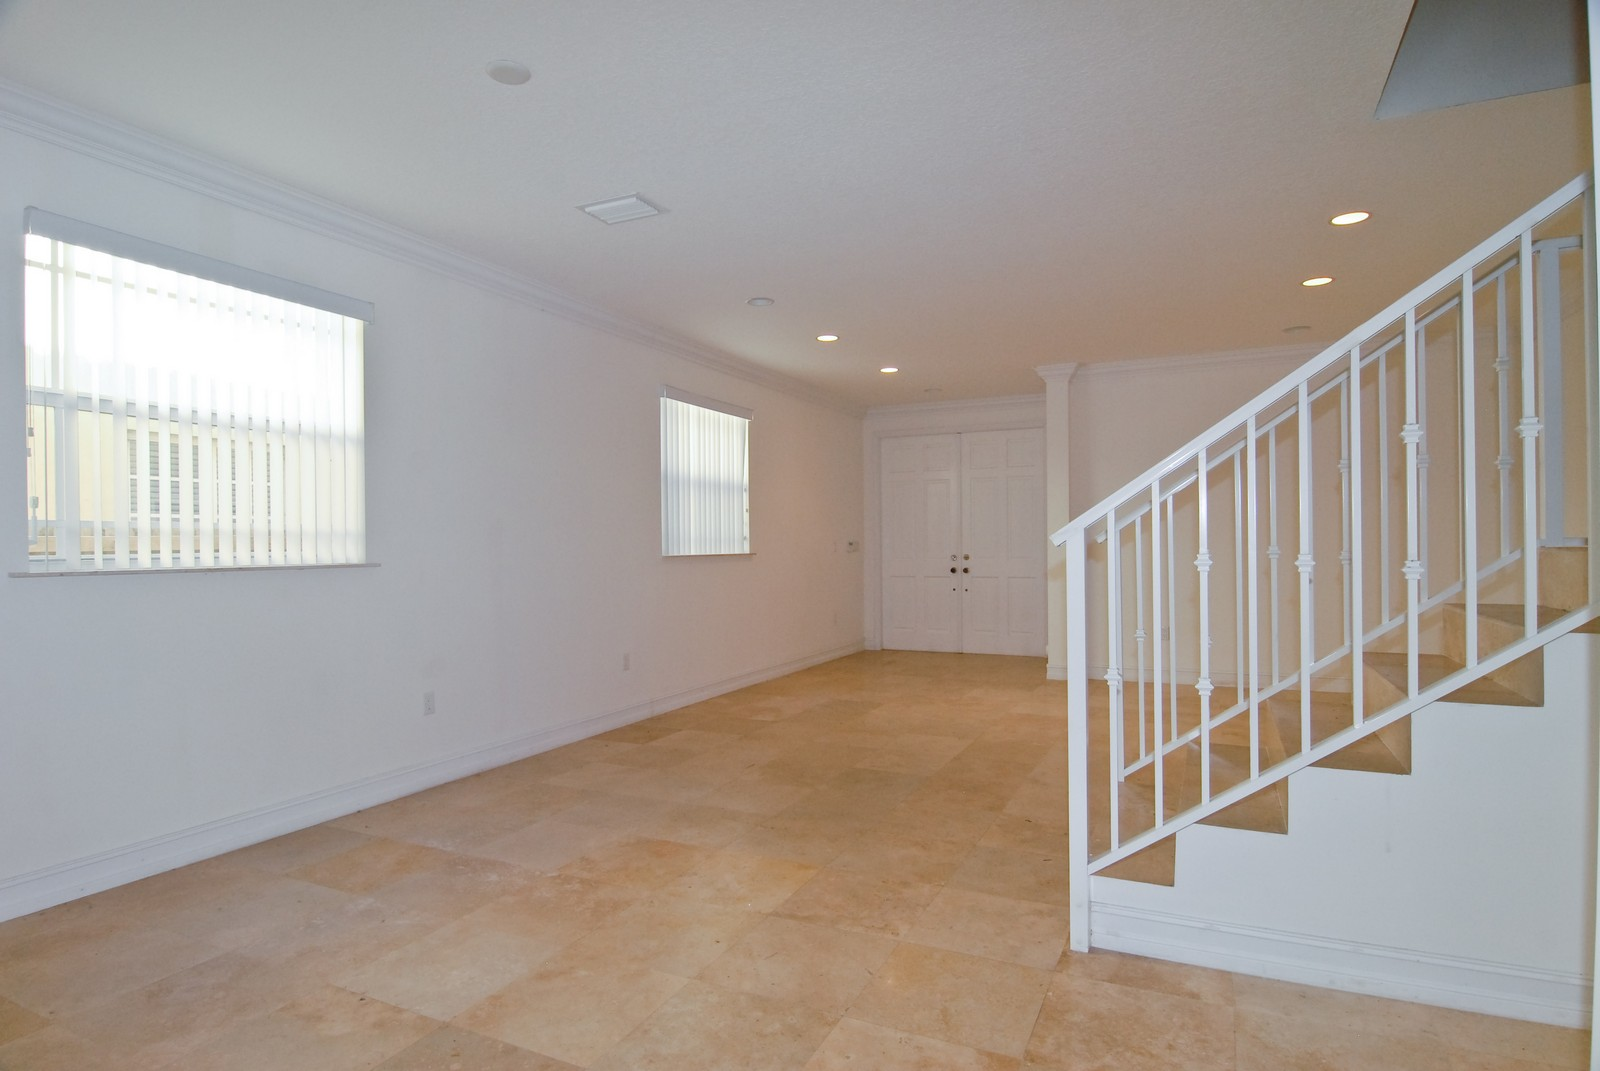 Real Estate Photography - 3034 Indiana St, Miami, FL, 33133 - Living Room / Dining Room